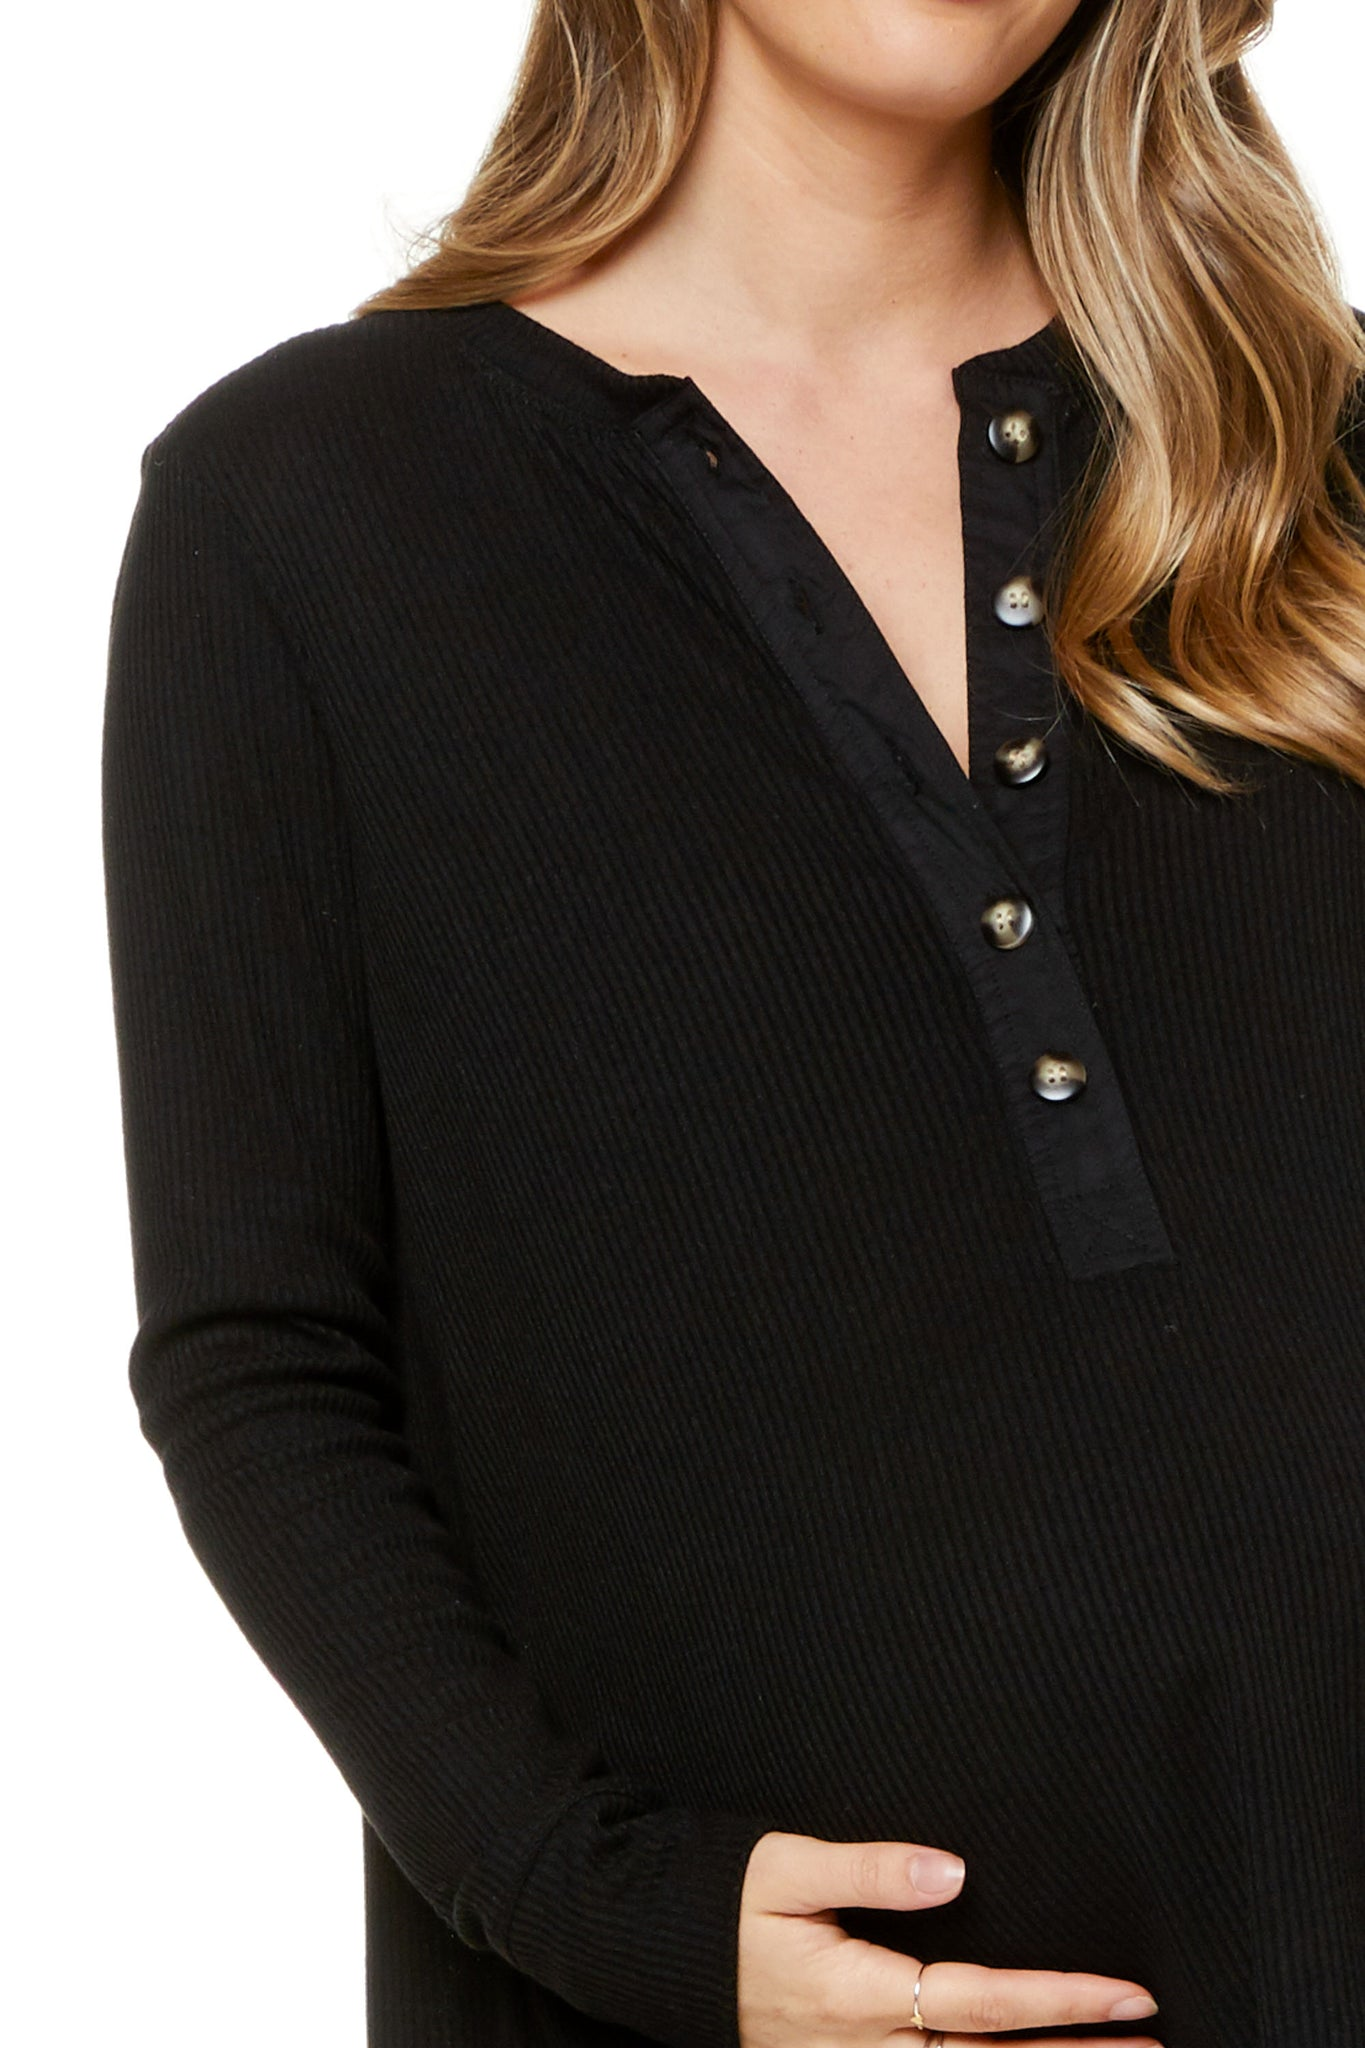 Maternity Top Black Image 5